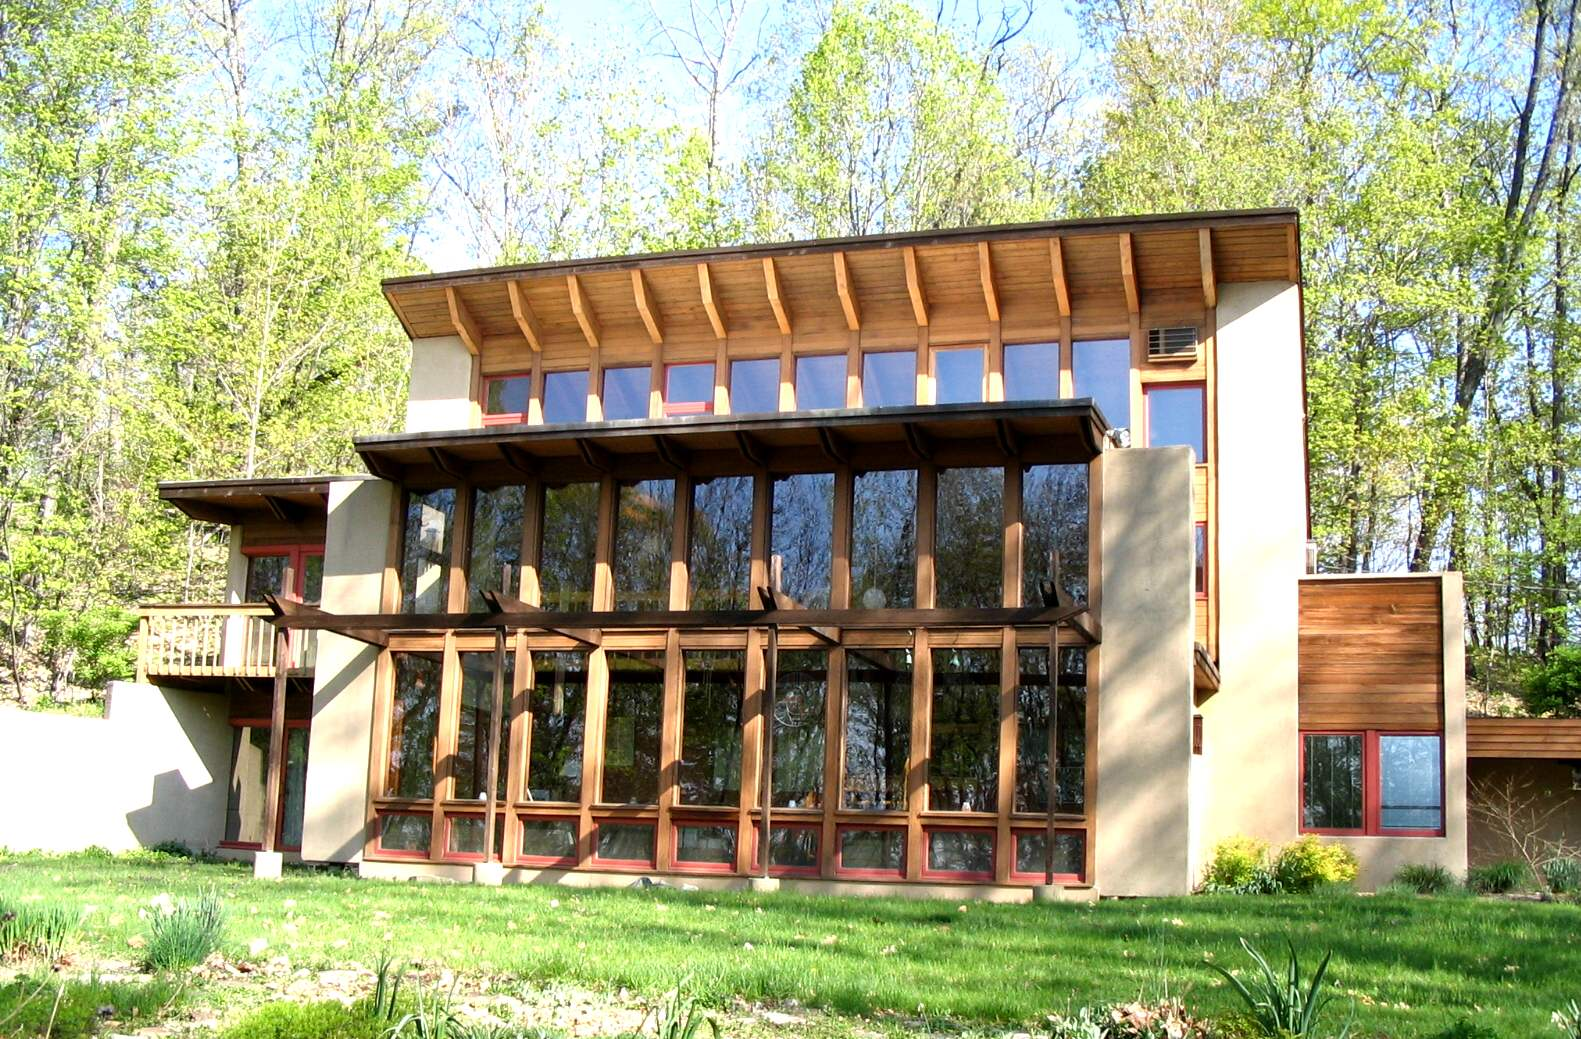 passive solar home energysage On solar home design